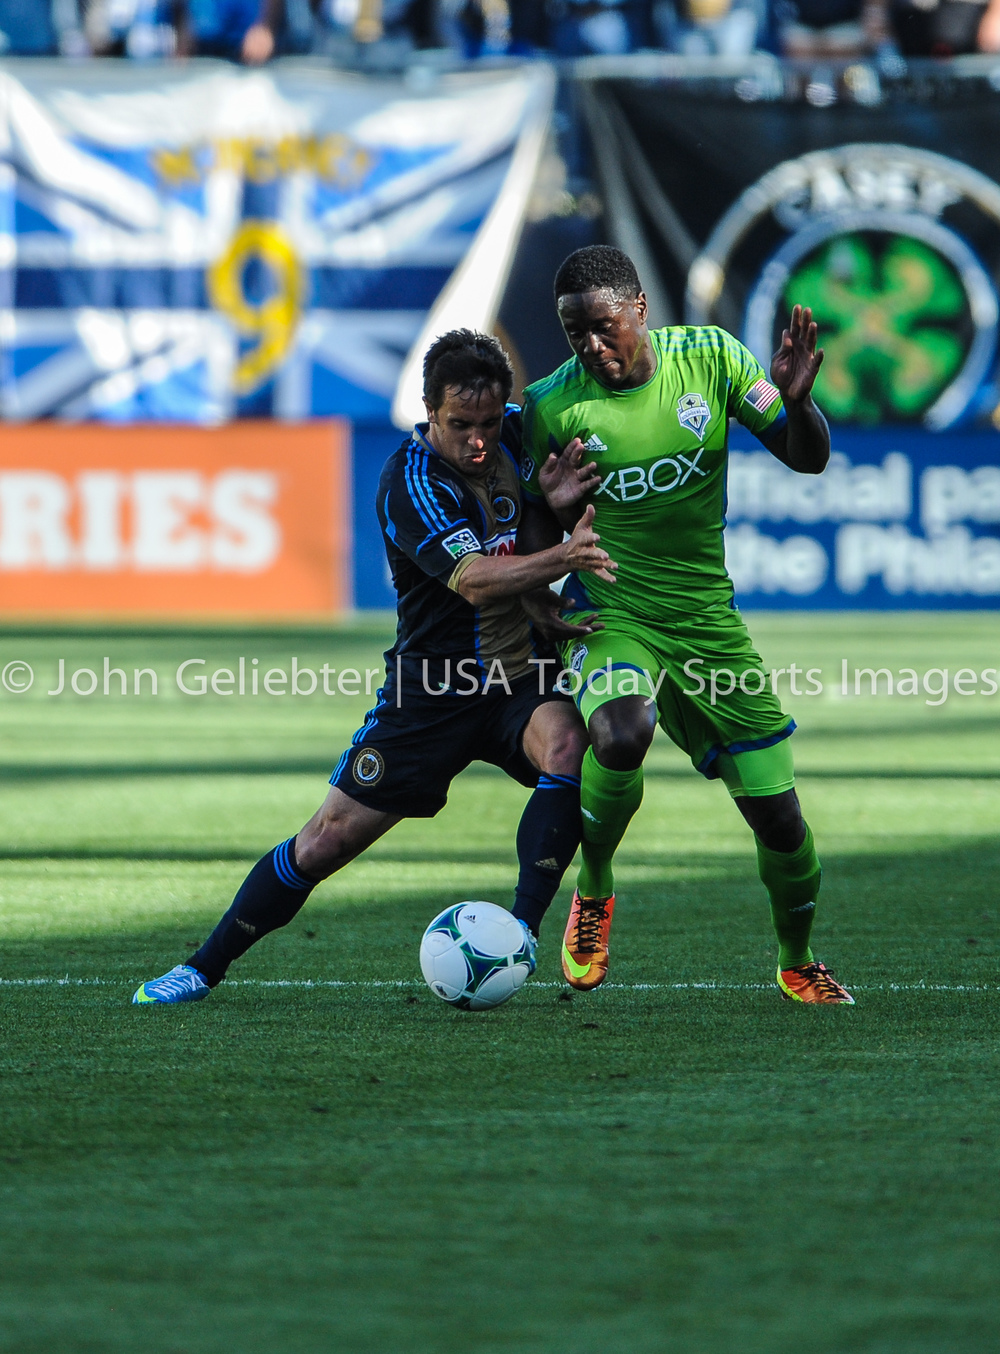 Sounders_Union_May_4_2013_JAG1282.jpg